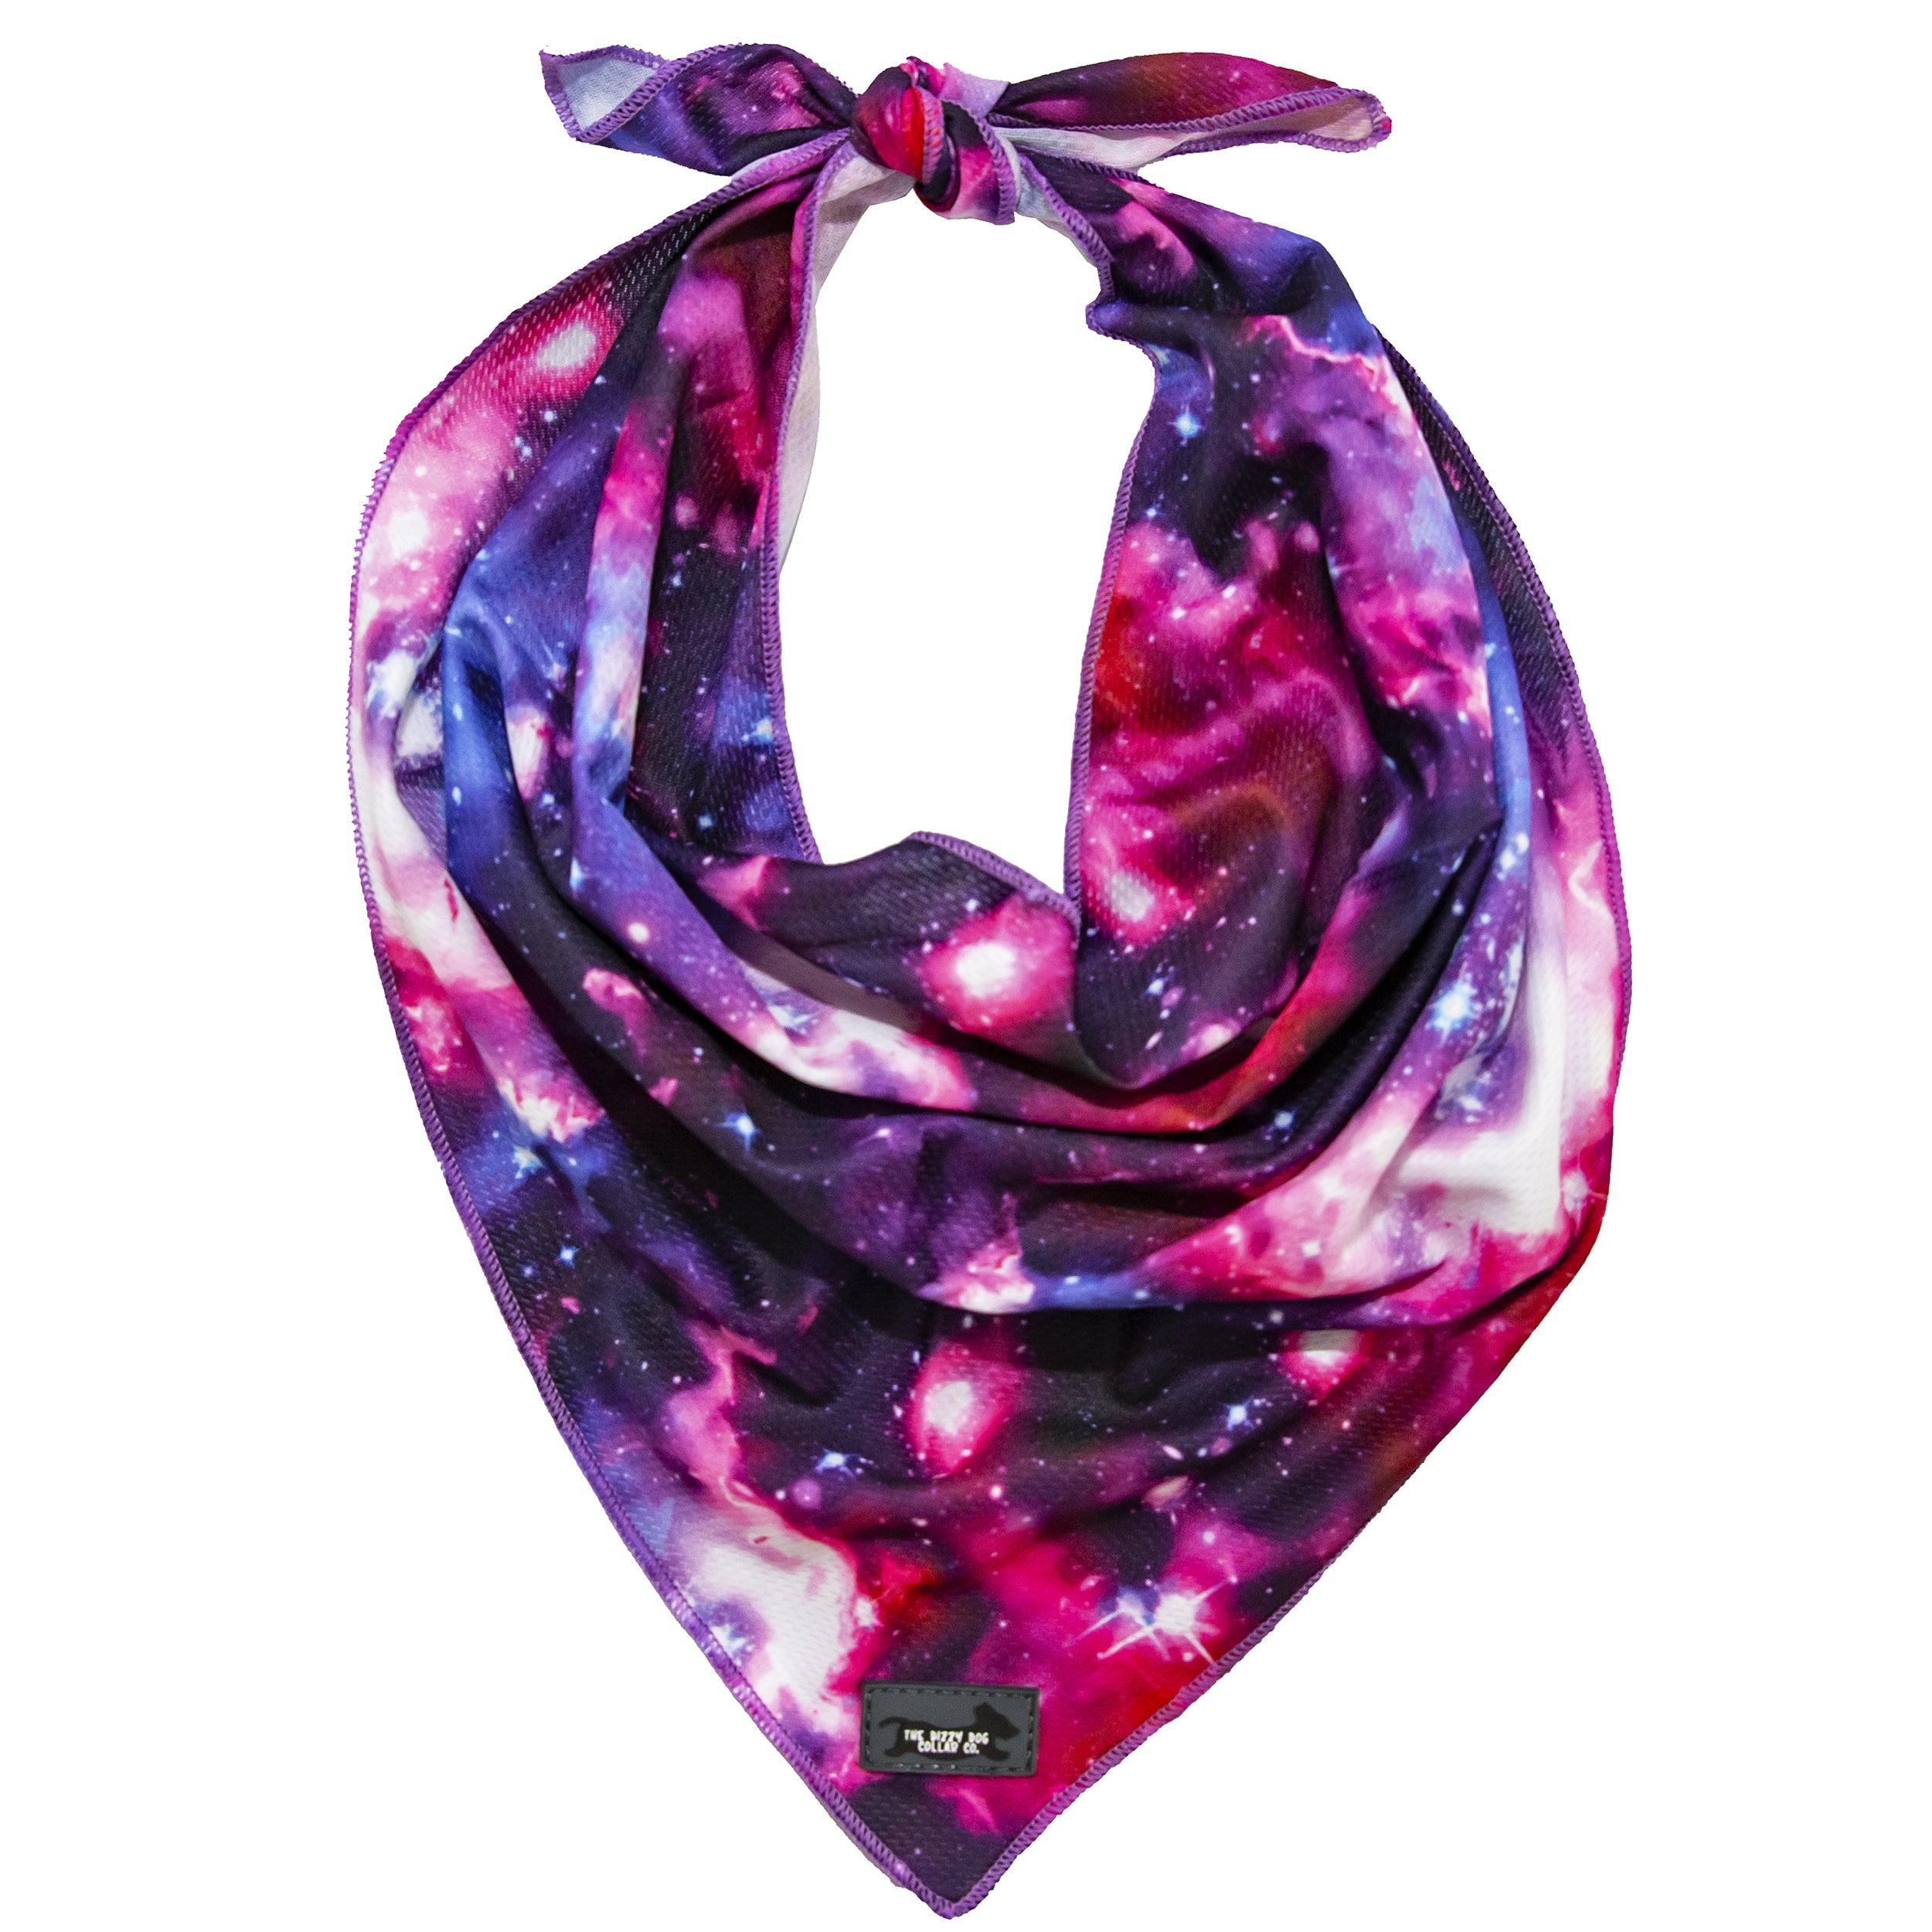 dog bandana australia, tie up dog bandana, galaxy dog bandana